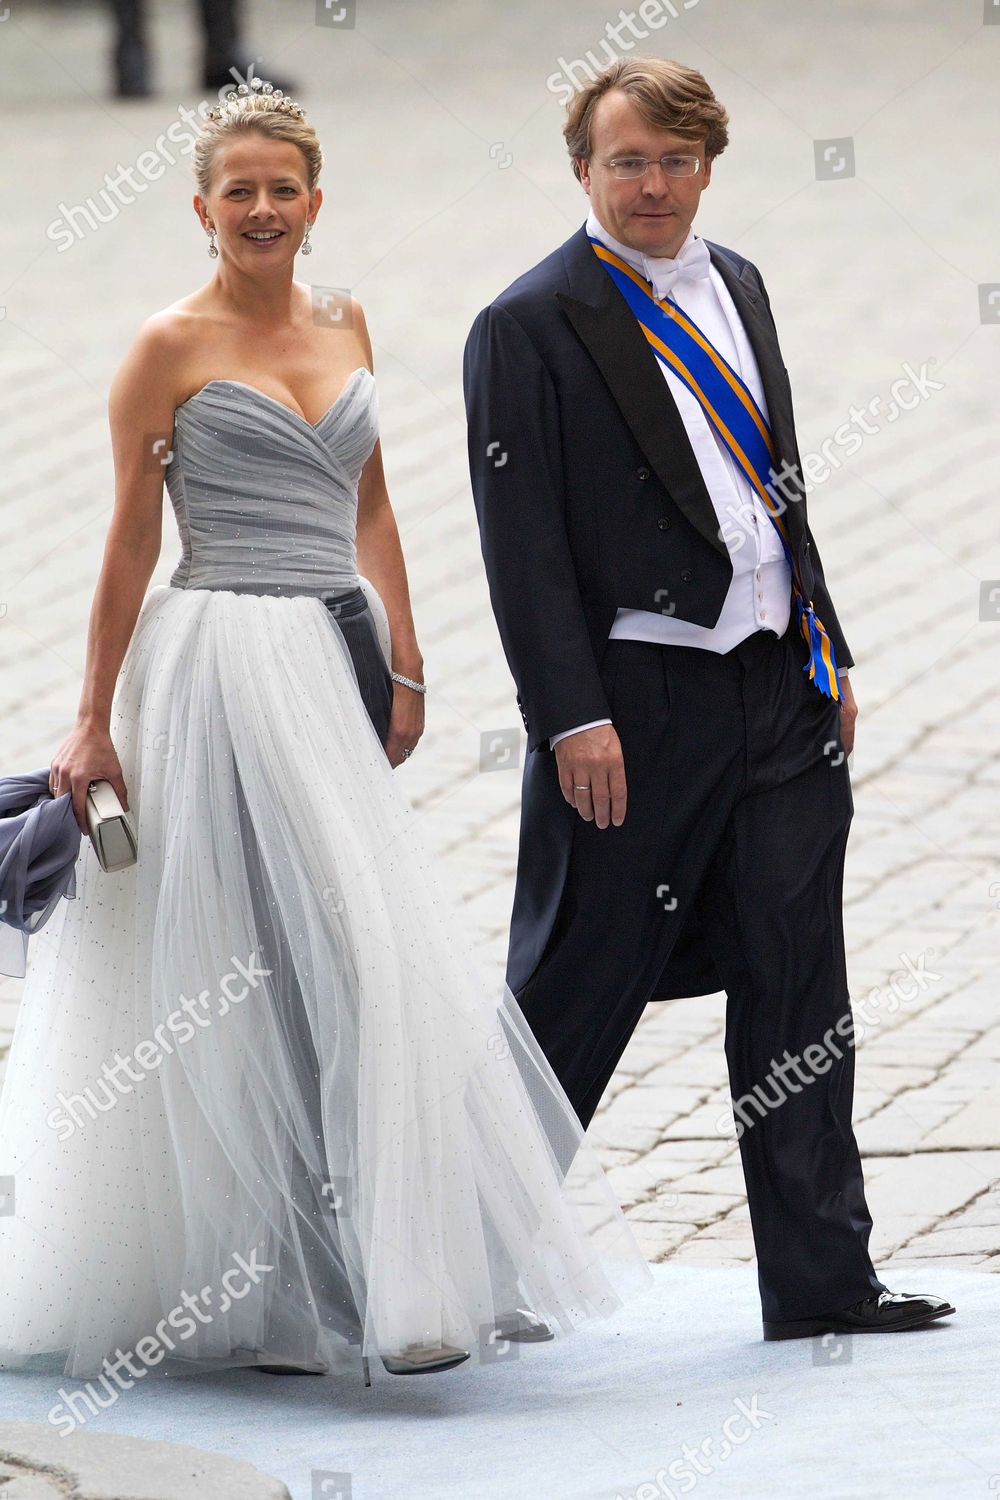 The wedding of Crown Princess Victoria and Daniel Westling, Stockholm Cathedral, Stockholm, Sweden - 19 Jun 2010: стоковое фото